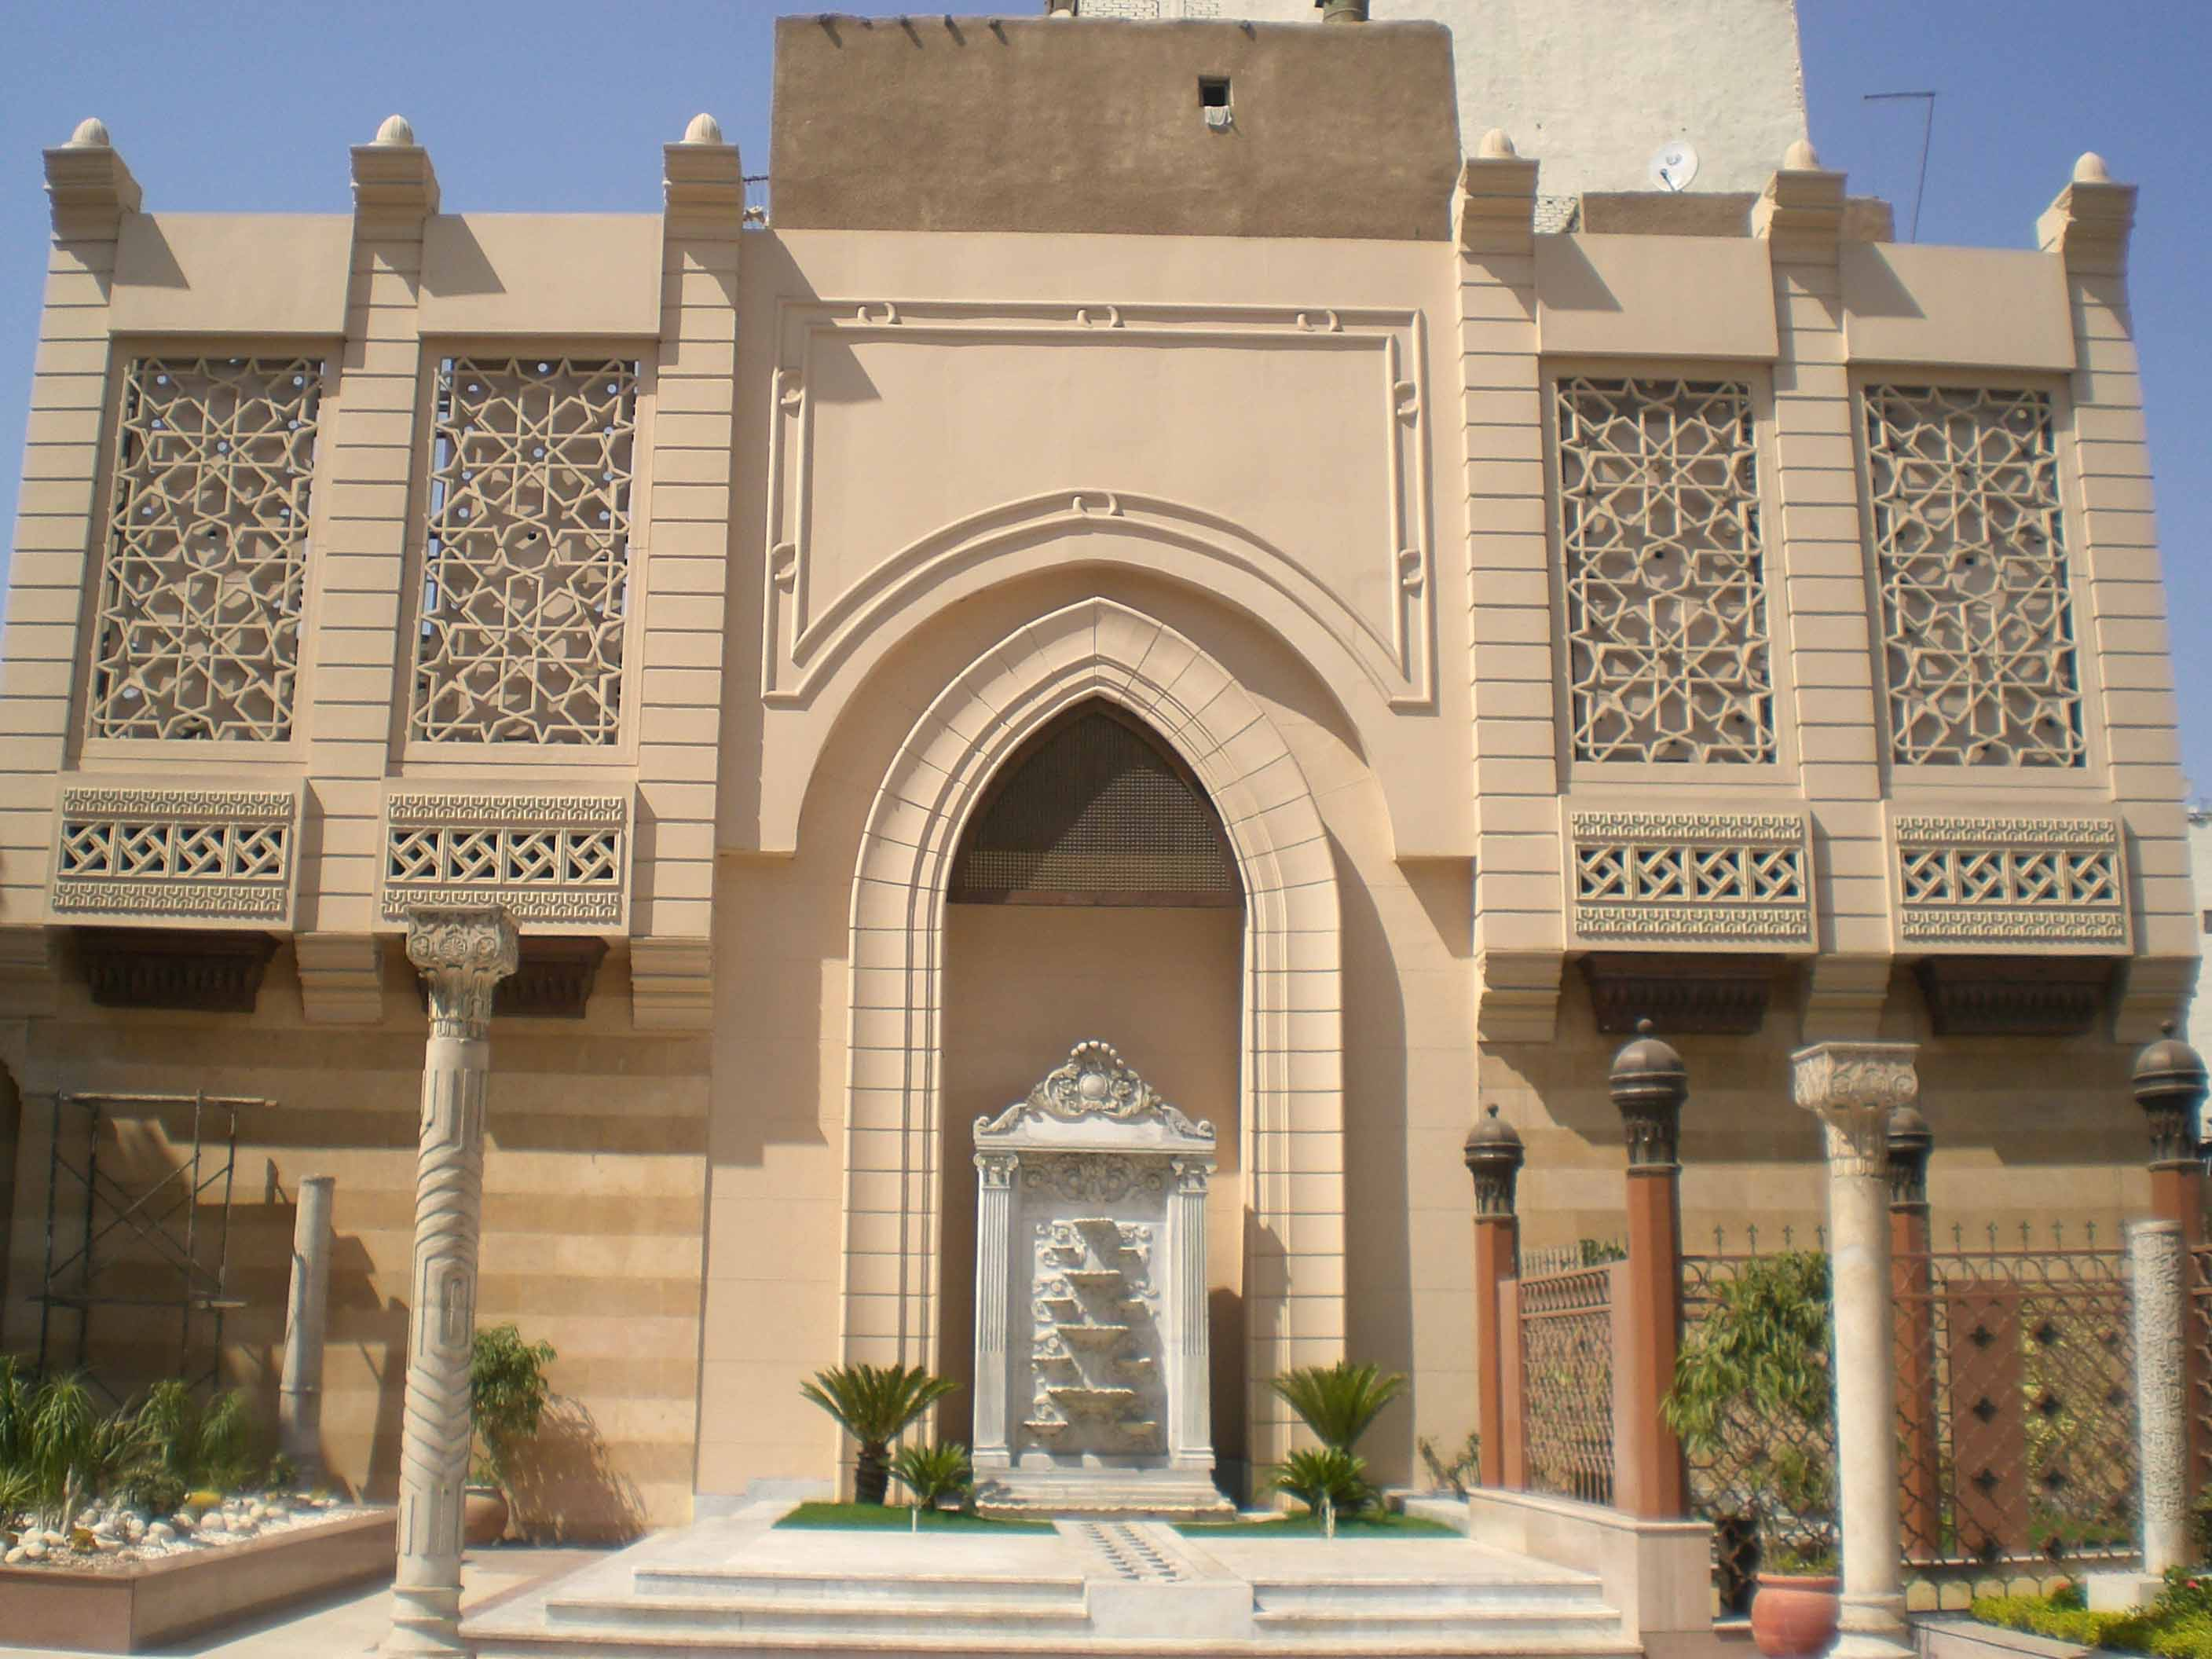 Museum of islamic arts old cairo egypt achturk for Architecture design company in egypt